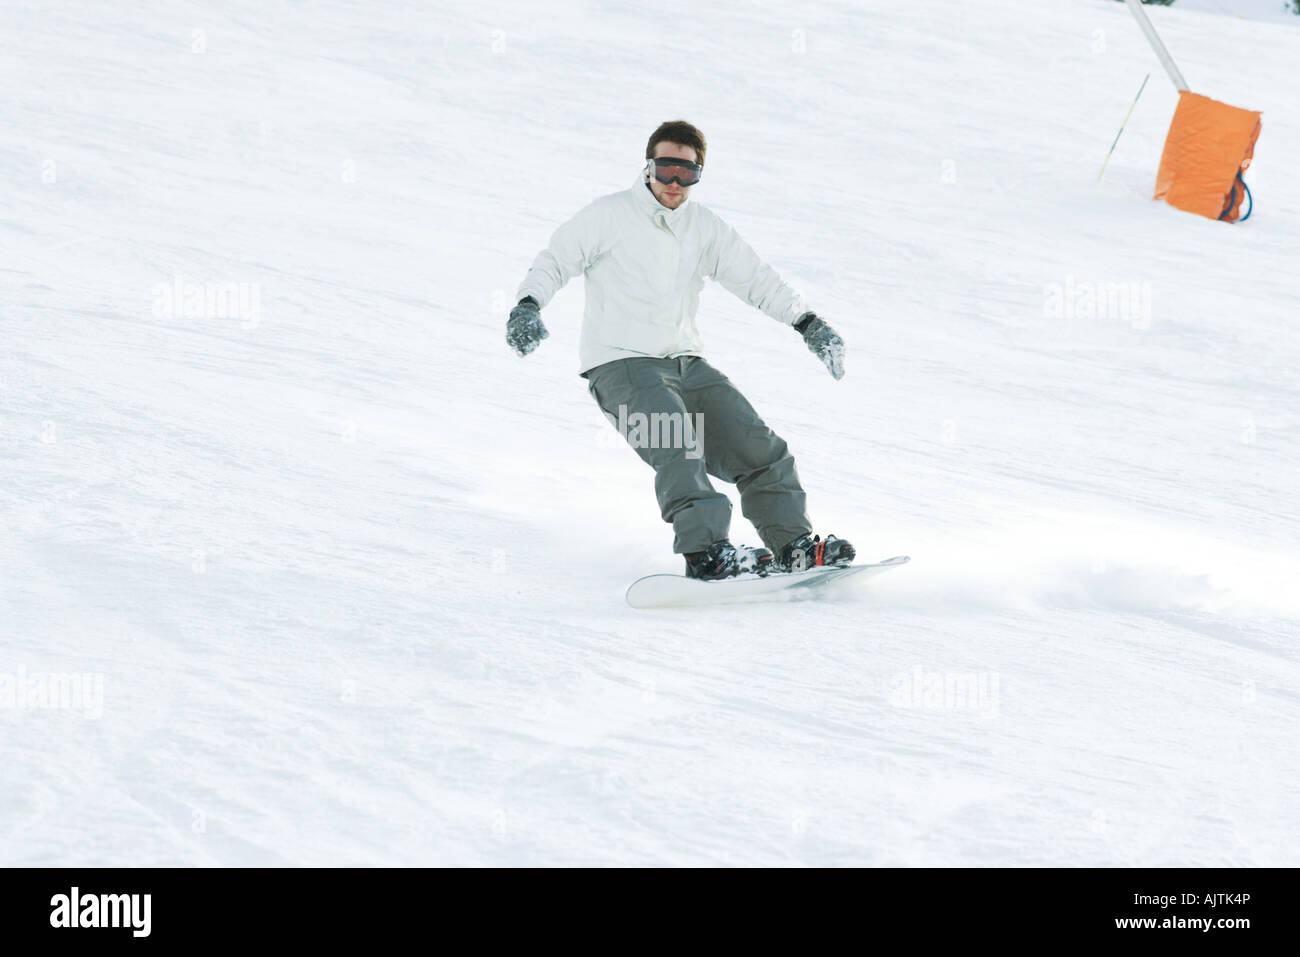 Young man snowboarding on ski slope, full length - Stock Image